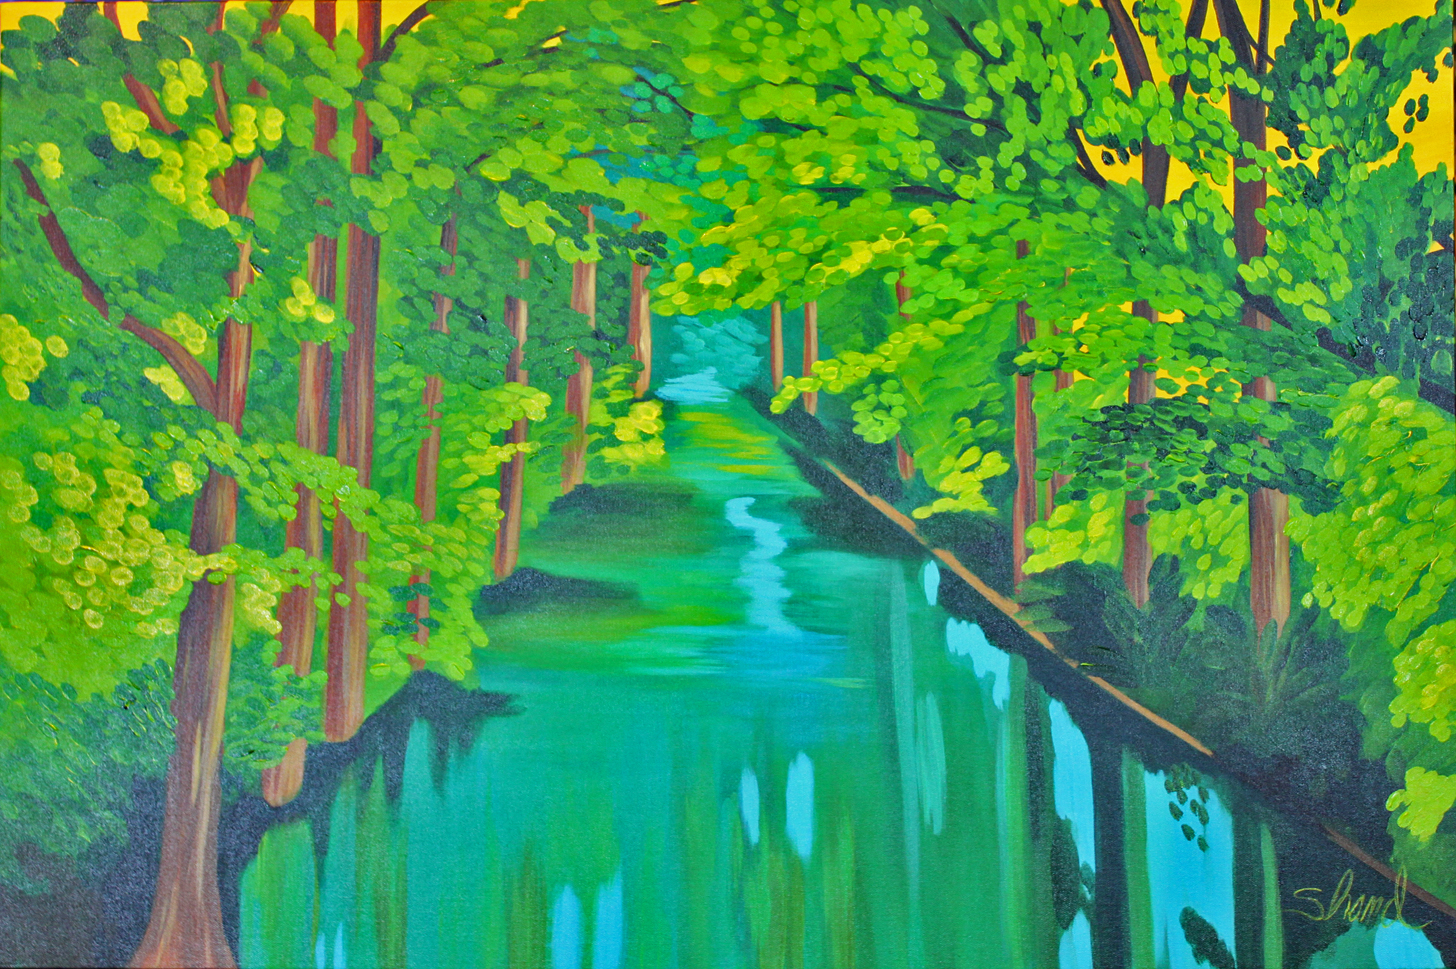 trees over the canal 36 x 24 no border